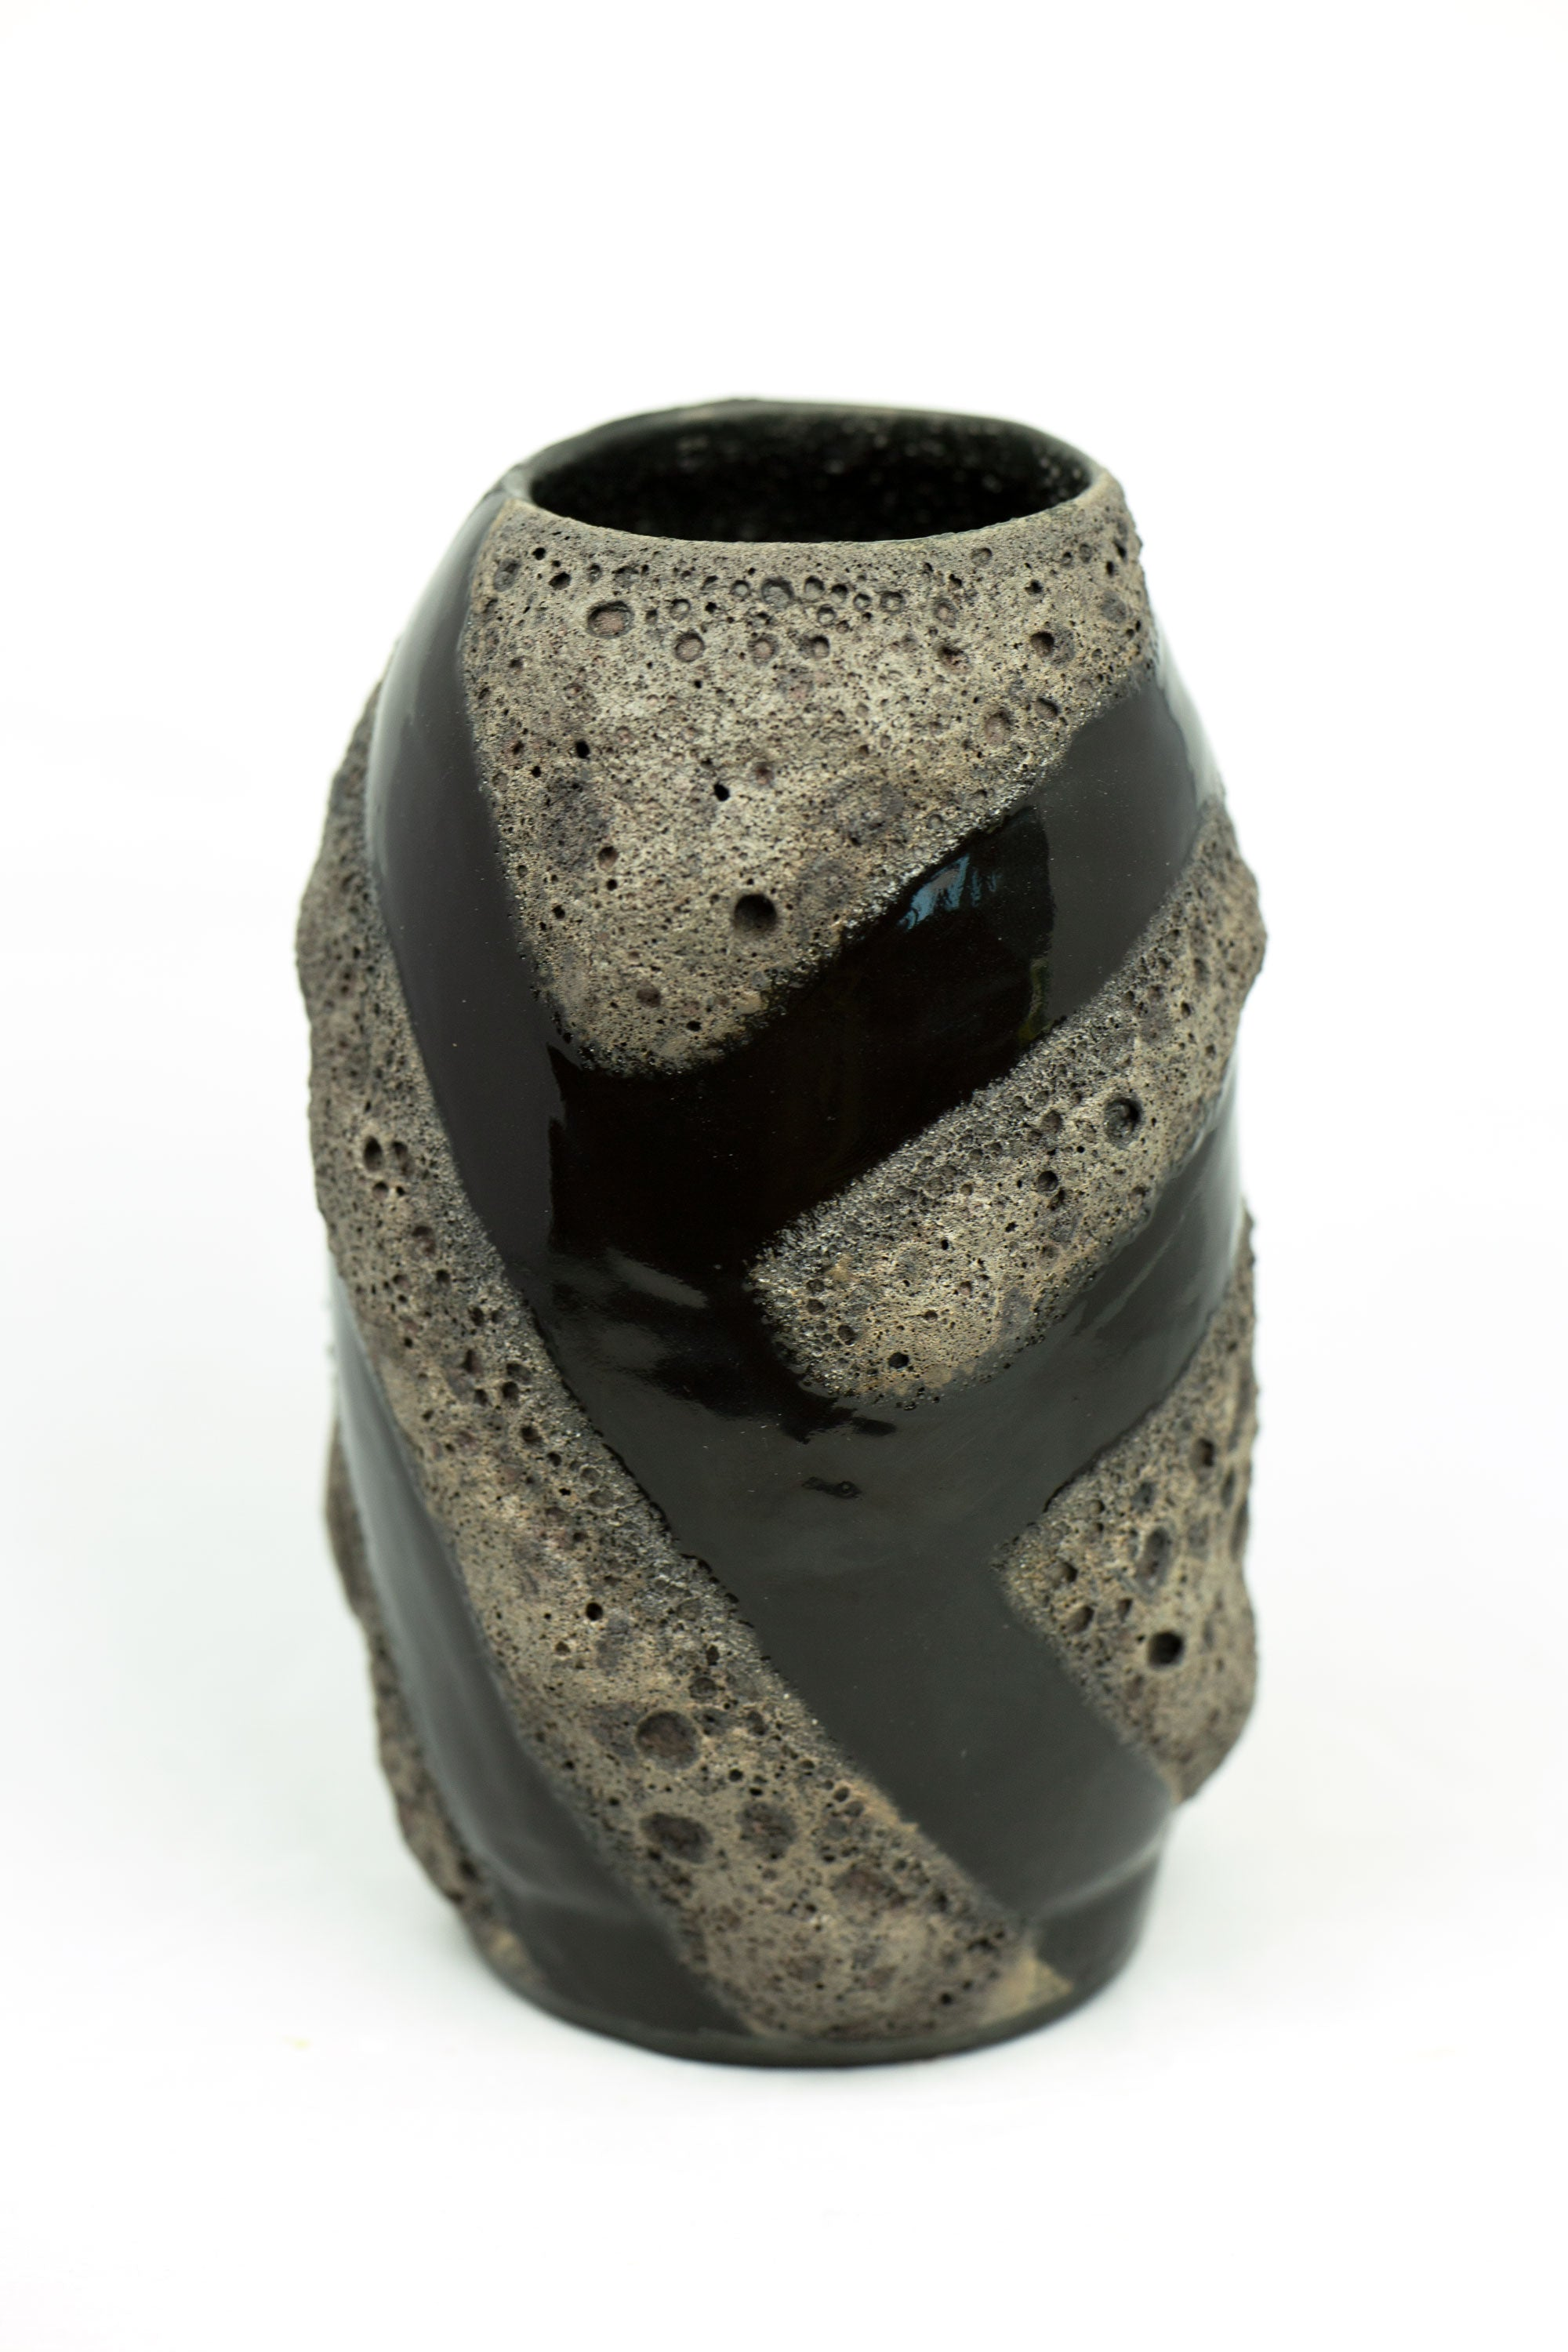 Black Lava Laze on Porcelain Vessel (SOLD)